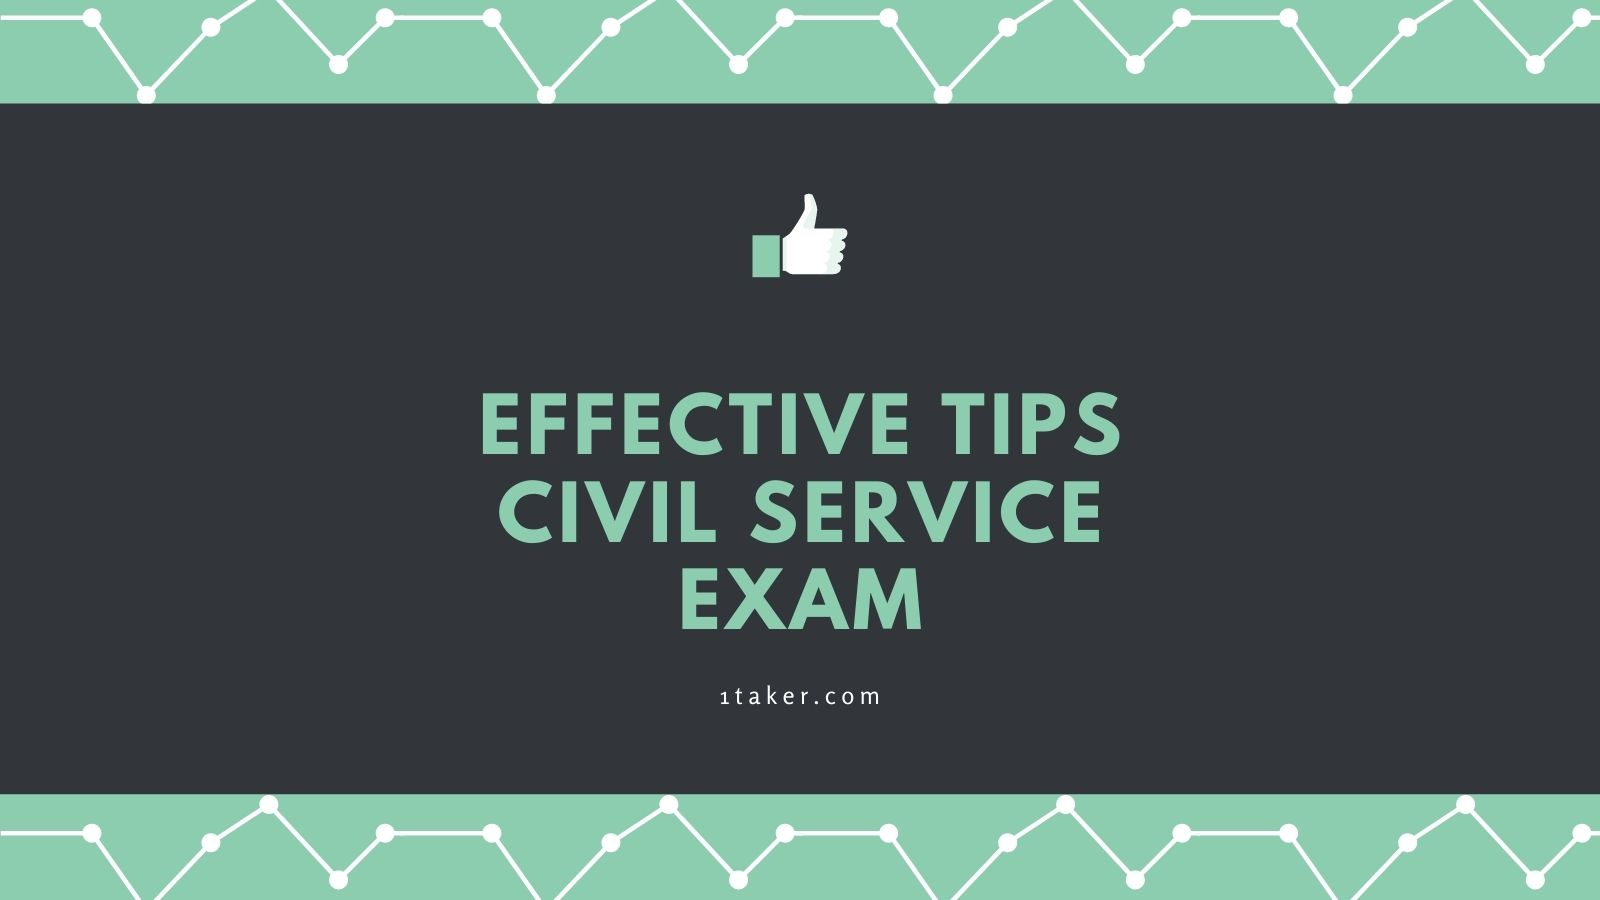 effective tips to pass civil service exam philippines